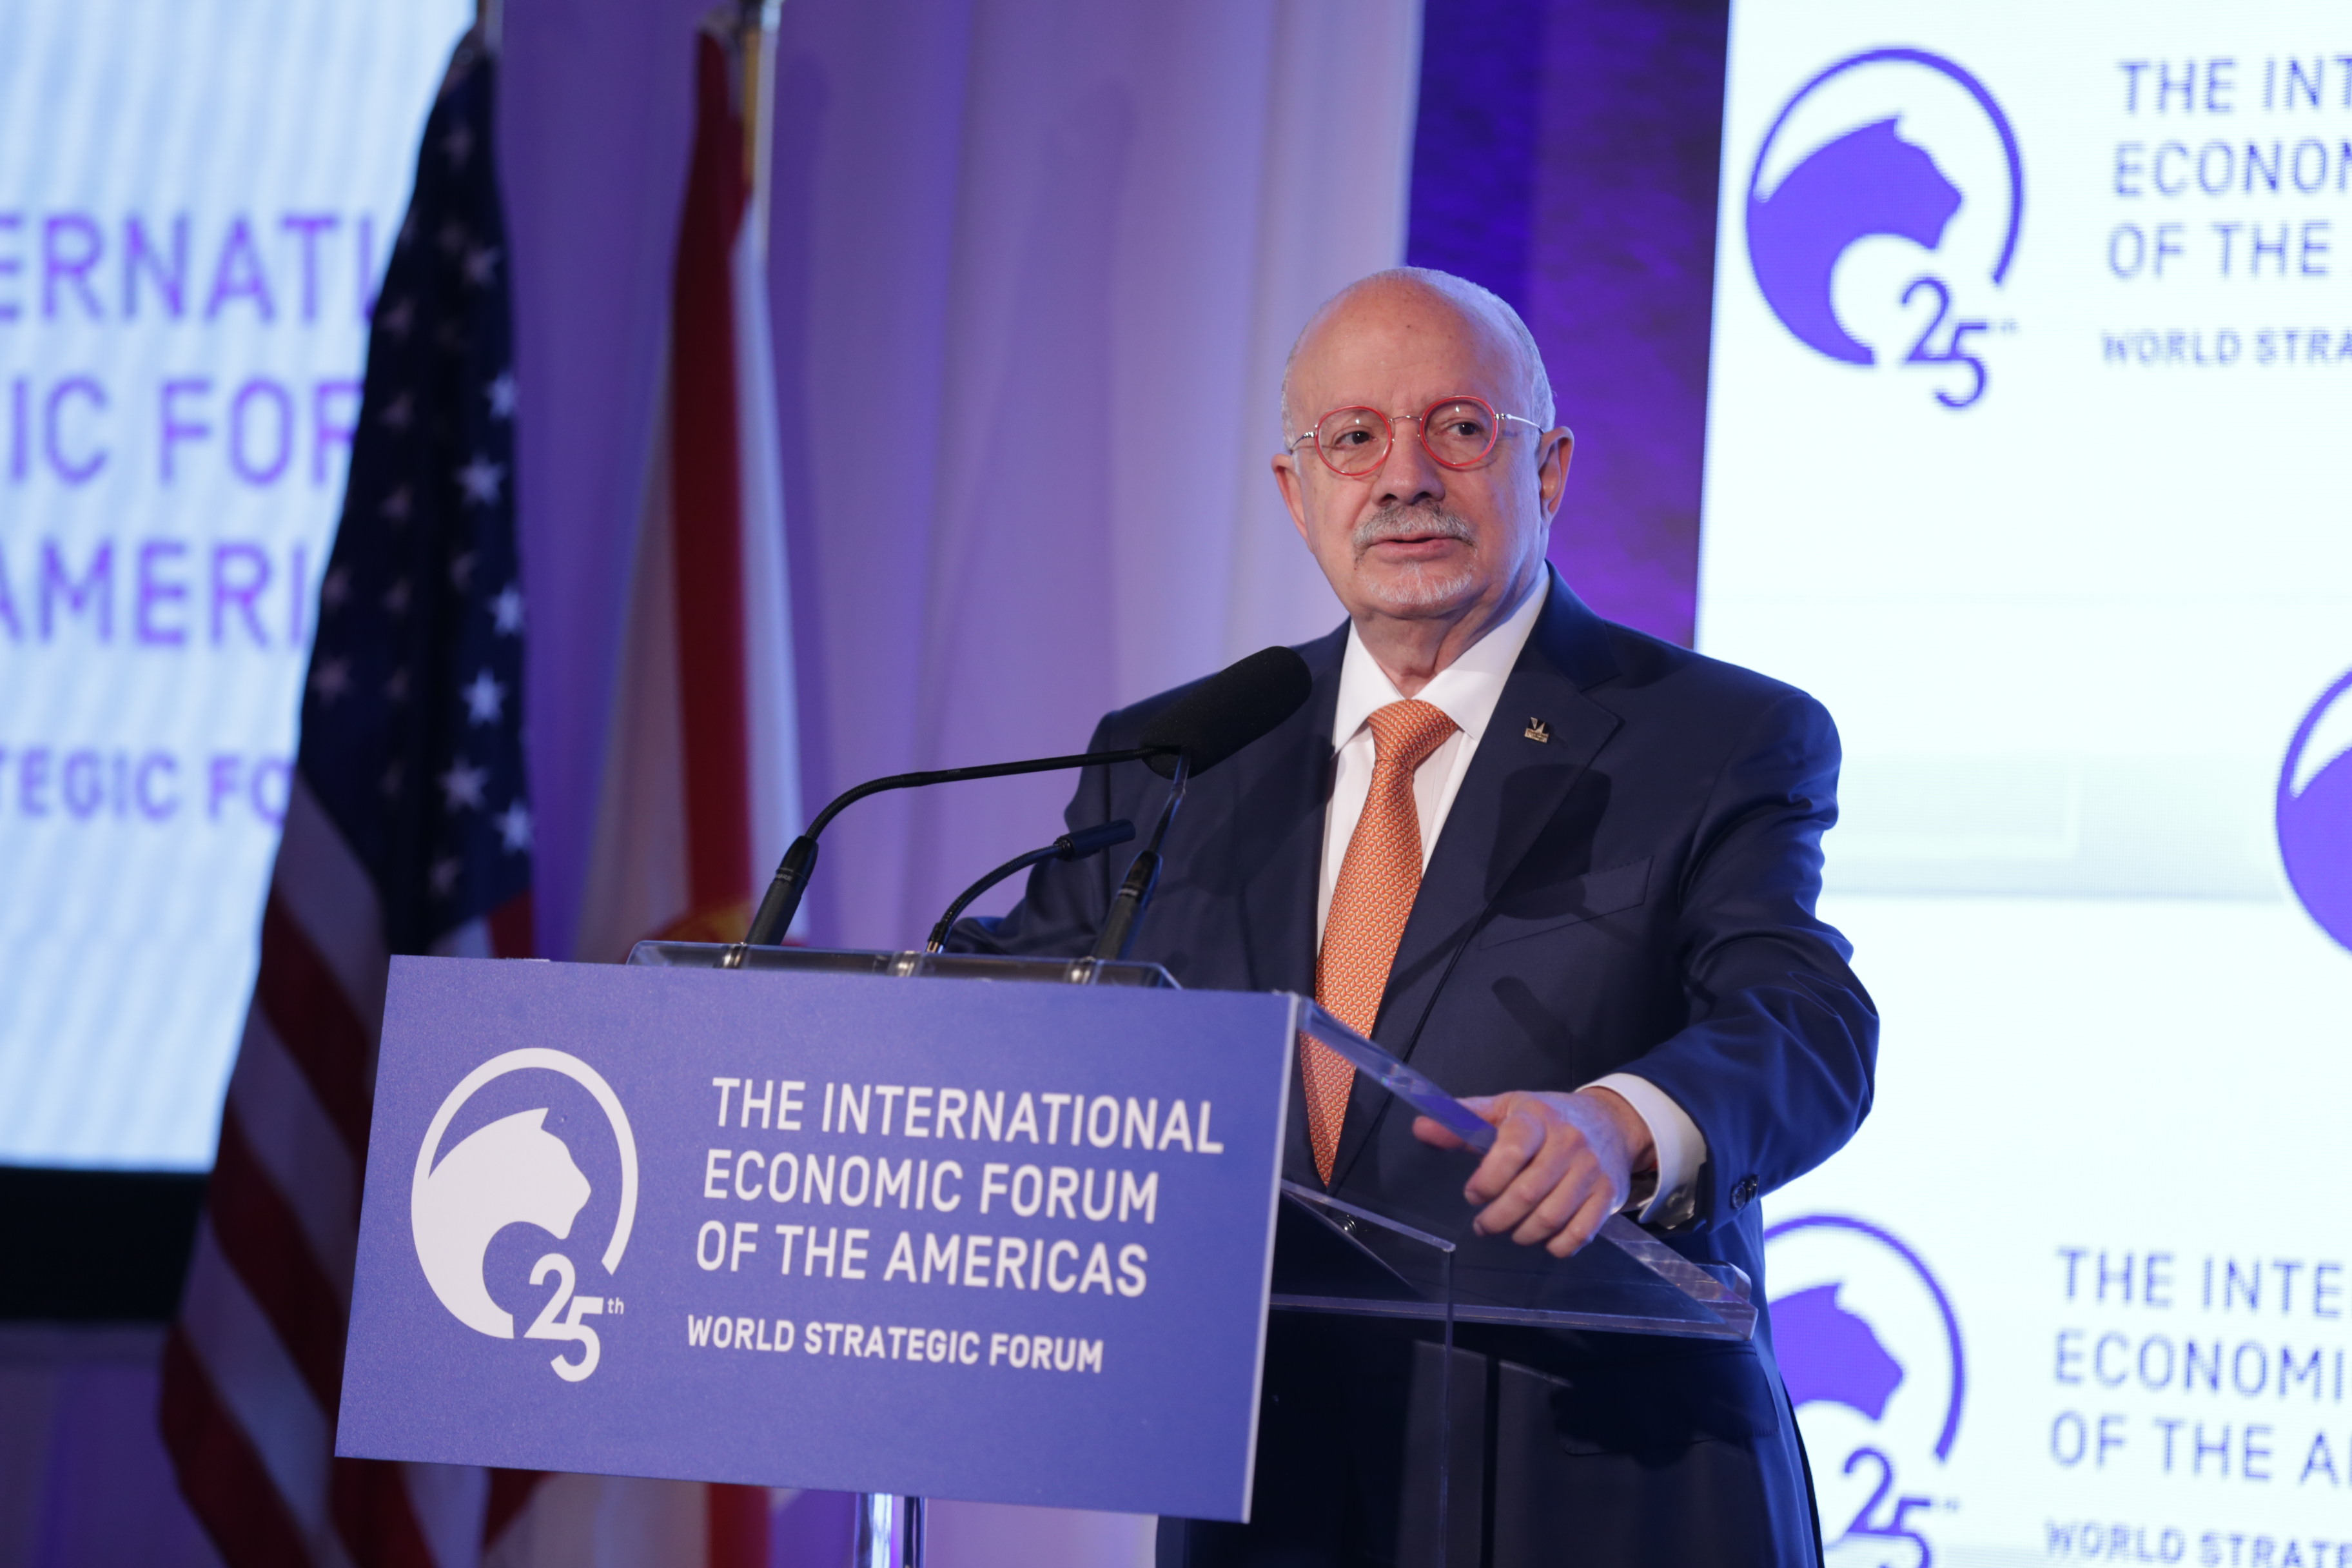 Eduardo J. Padron, President, Miami Dade College (MDC); and Chairman of the Advisory Board, World Strategic Forum 2019